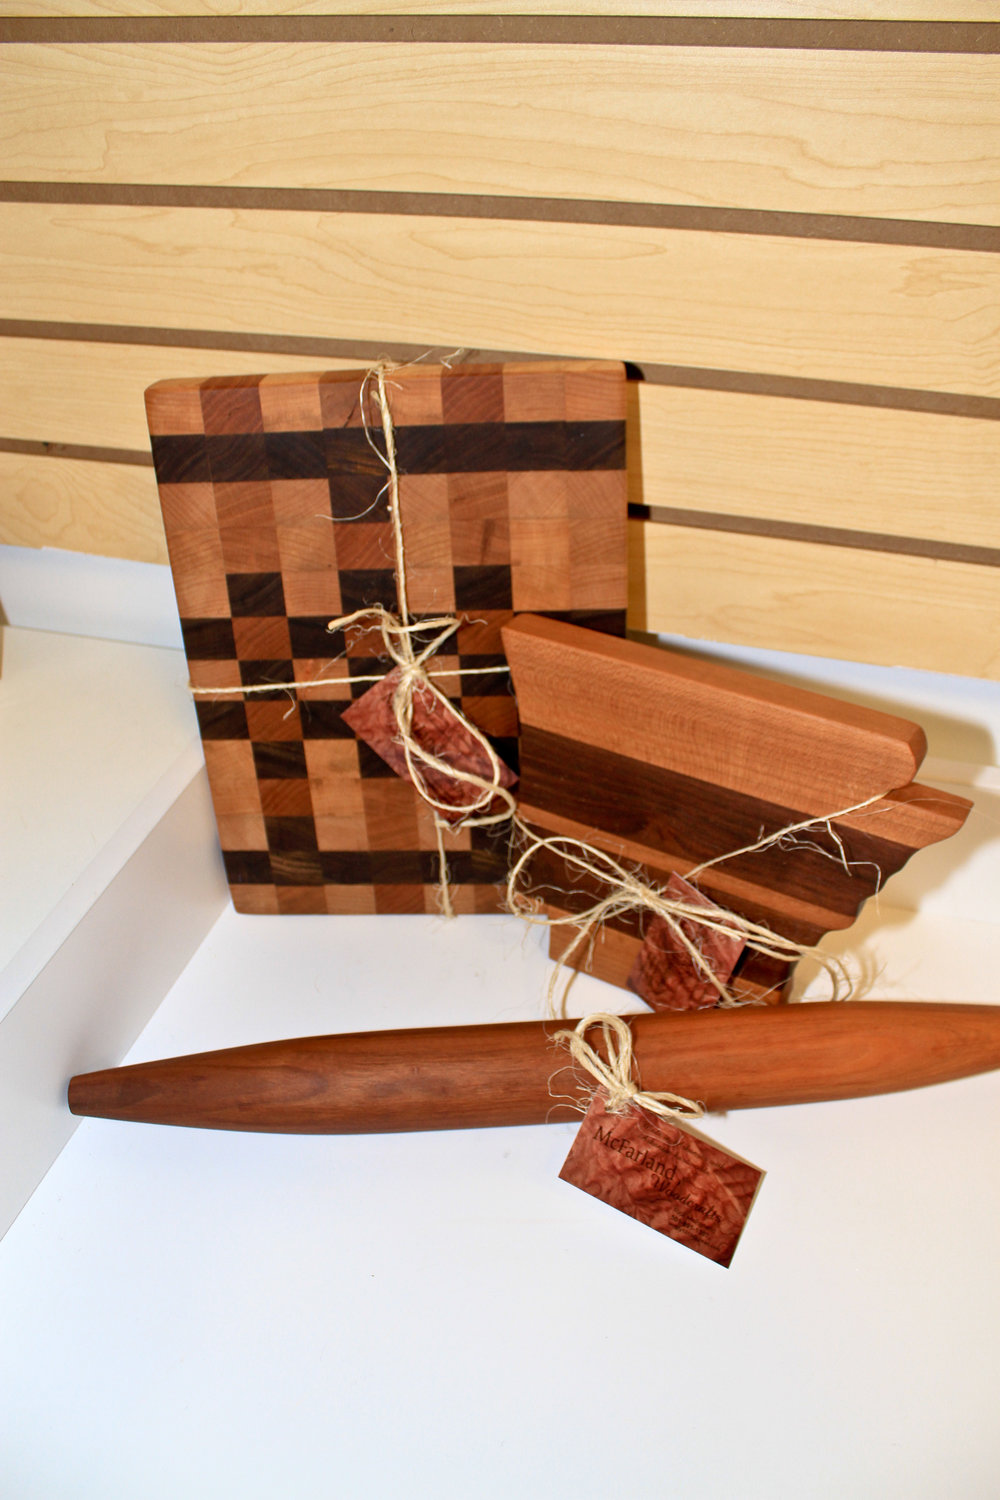 McFarland Woodcrafts items at Sweet Candy + Gifts, great corporate gifts